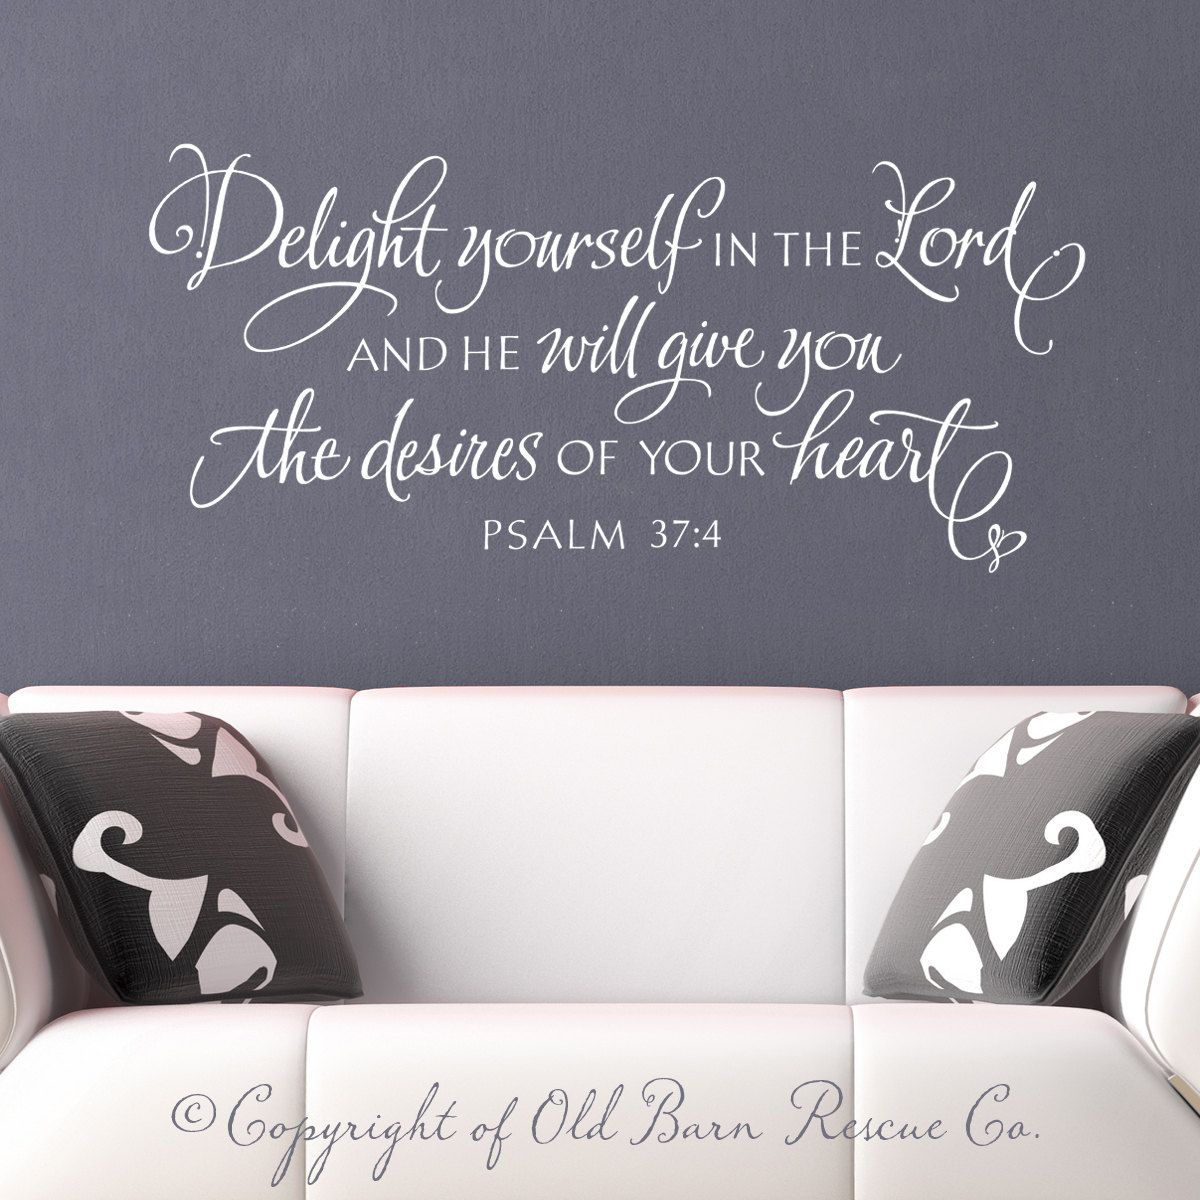 Vinyl wall decal wall sticker delight yourself in the lord vinyl wall decal wall sticker delight yourself in the lord bible verse hand lettered scripture art amipublicfo Gallery